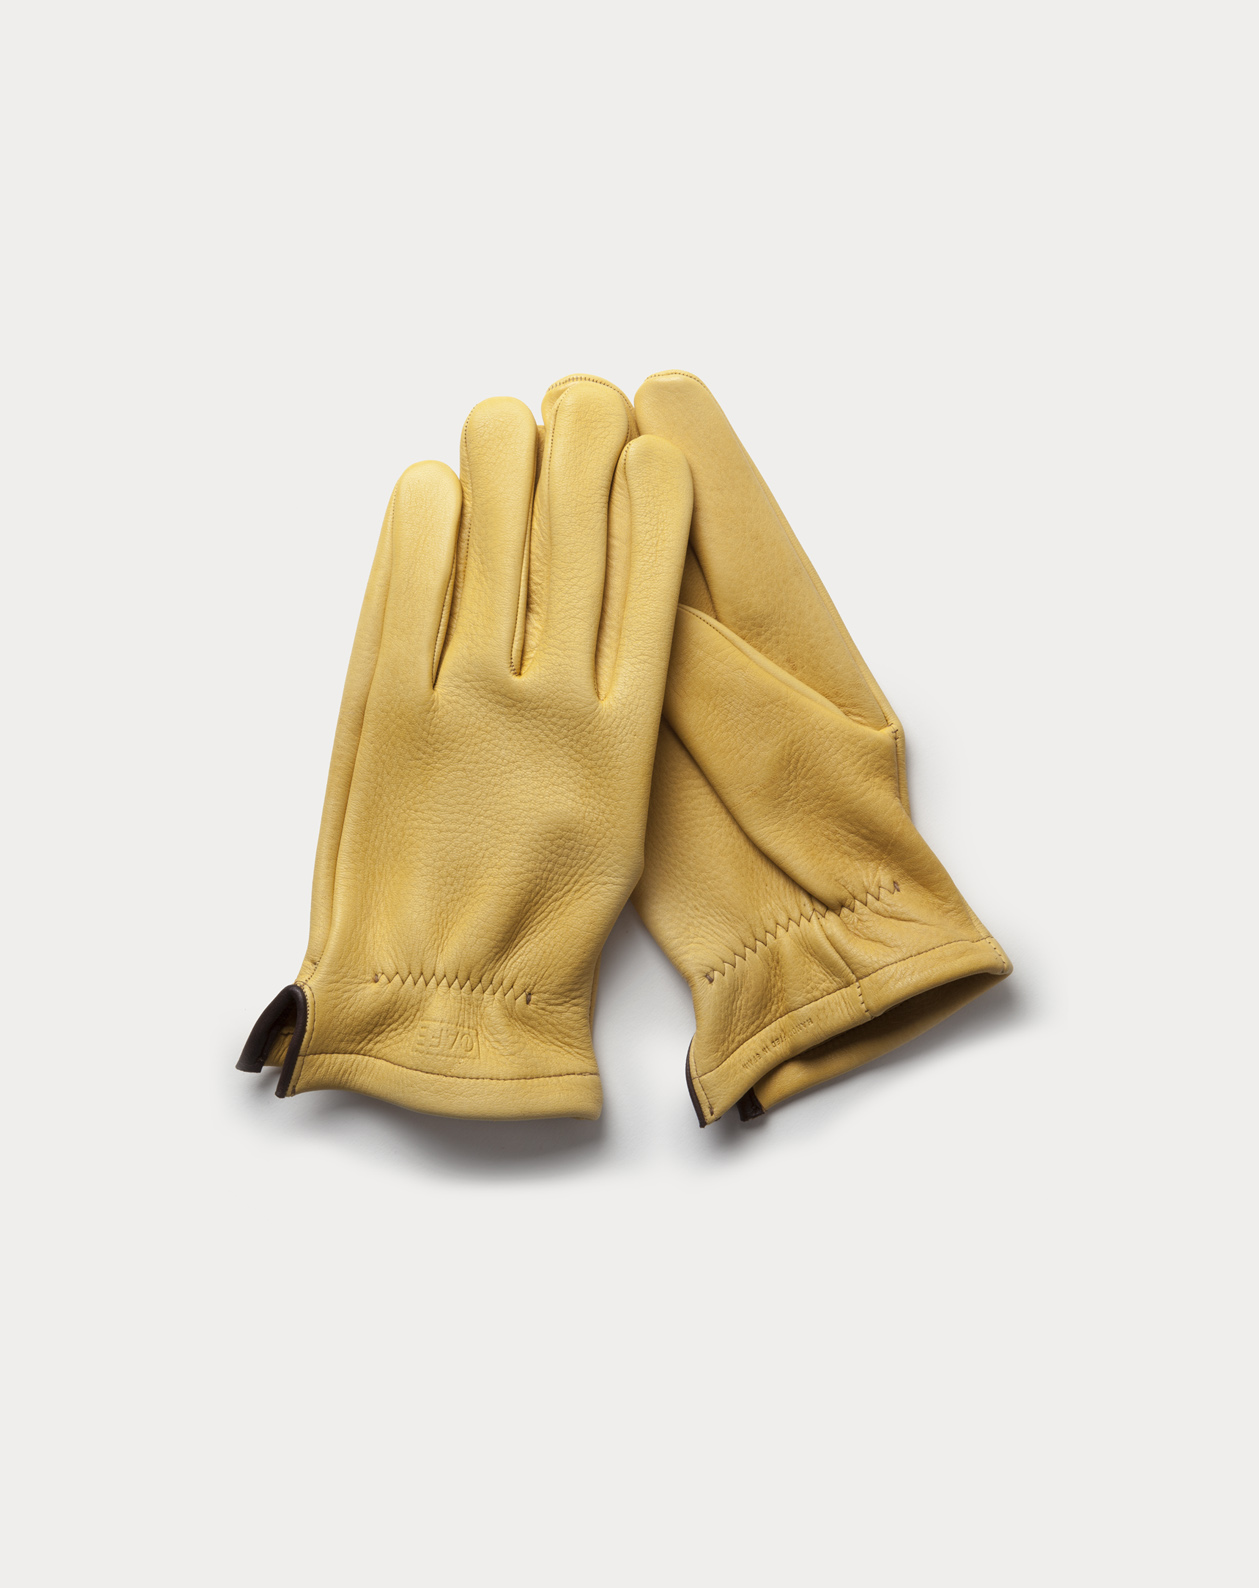 Deerskin gloves Hudson handcrafted in Spain